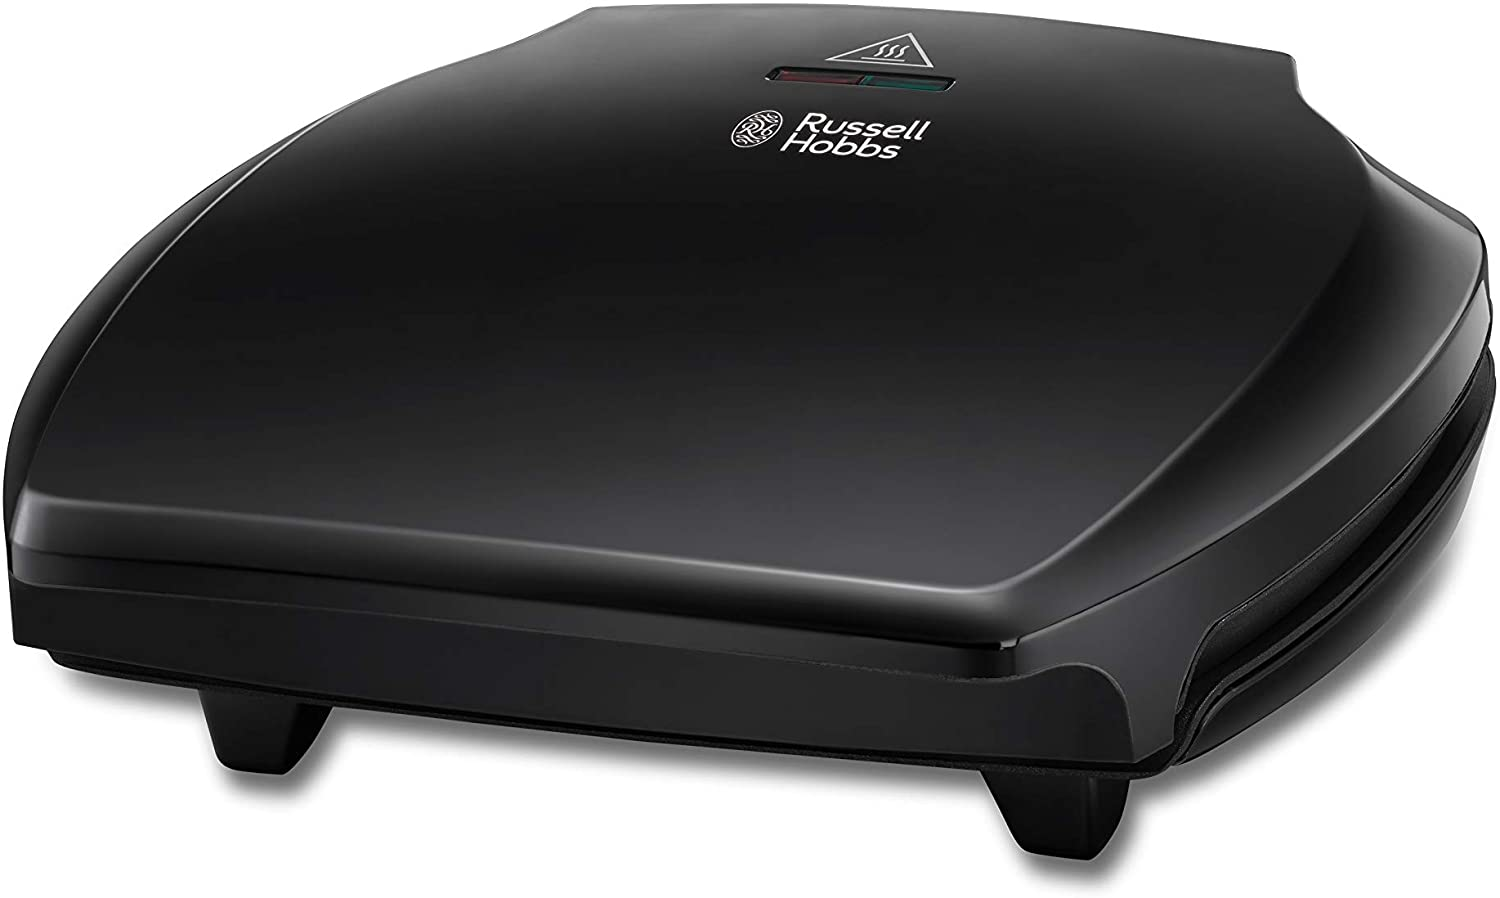 Russell Hobbs Family 5 Portion Grill 23420